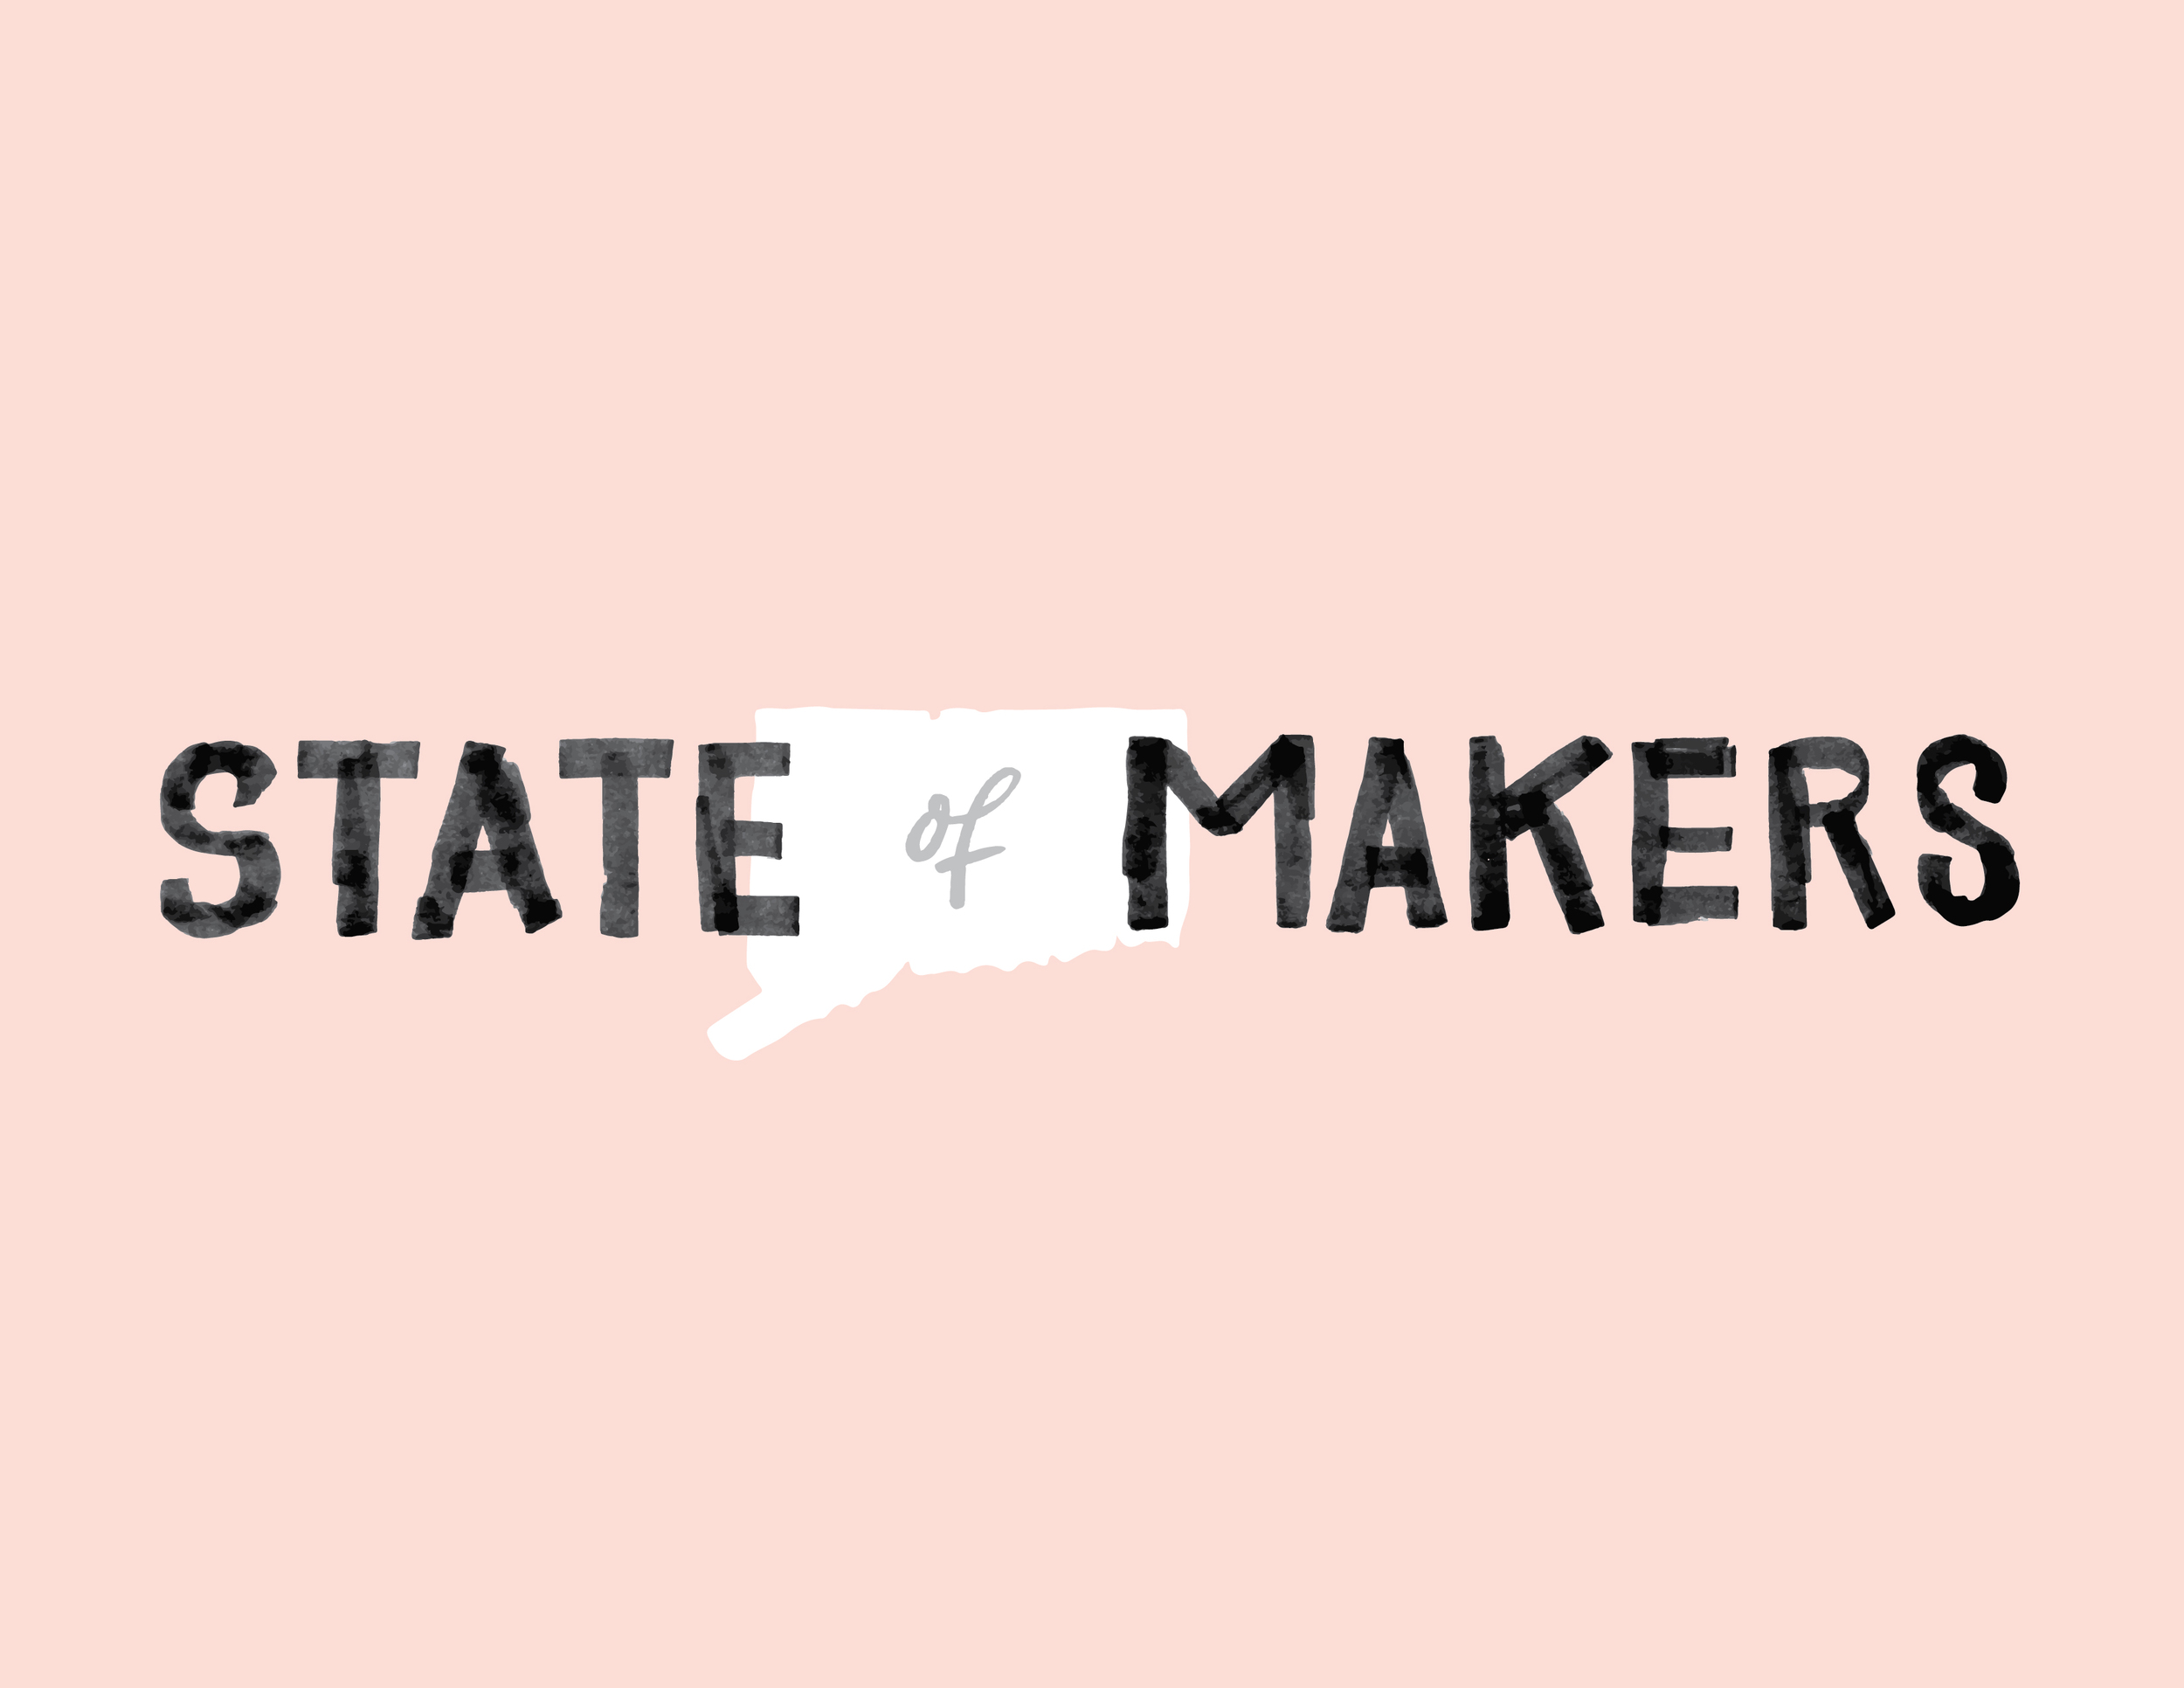 StateOfMakers_2-01.jpg